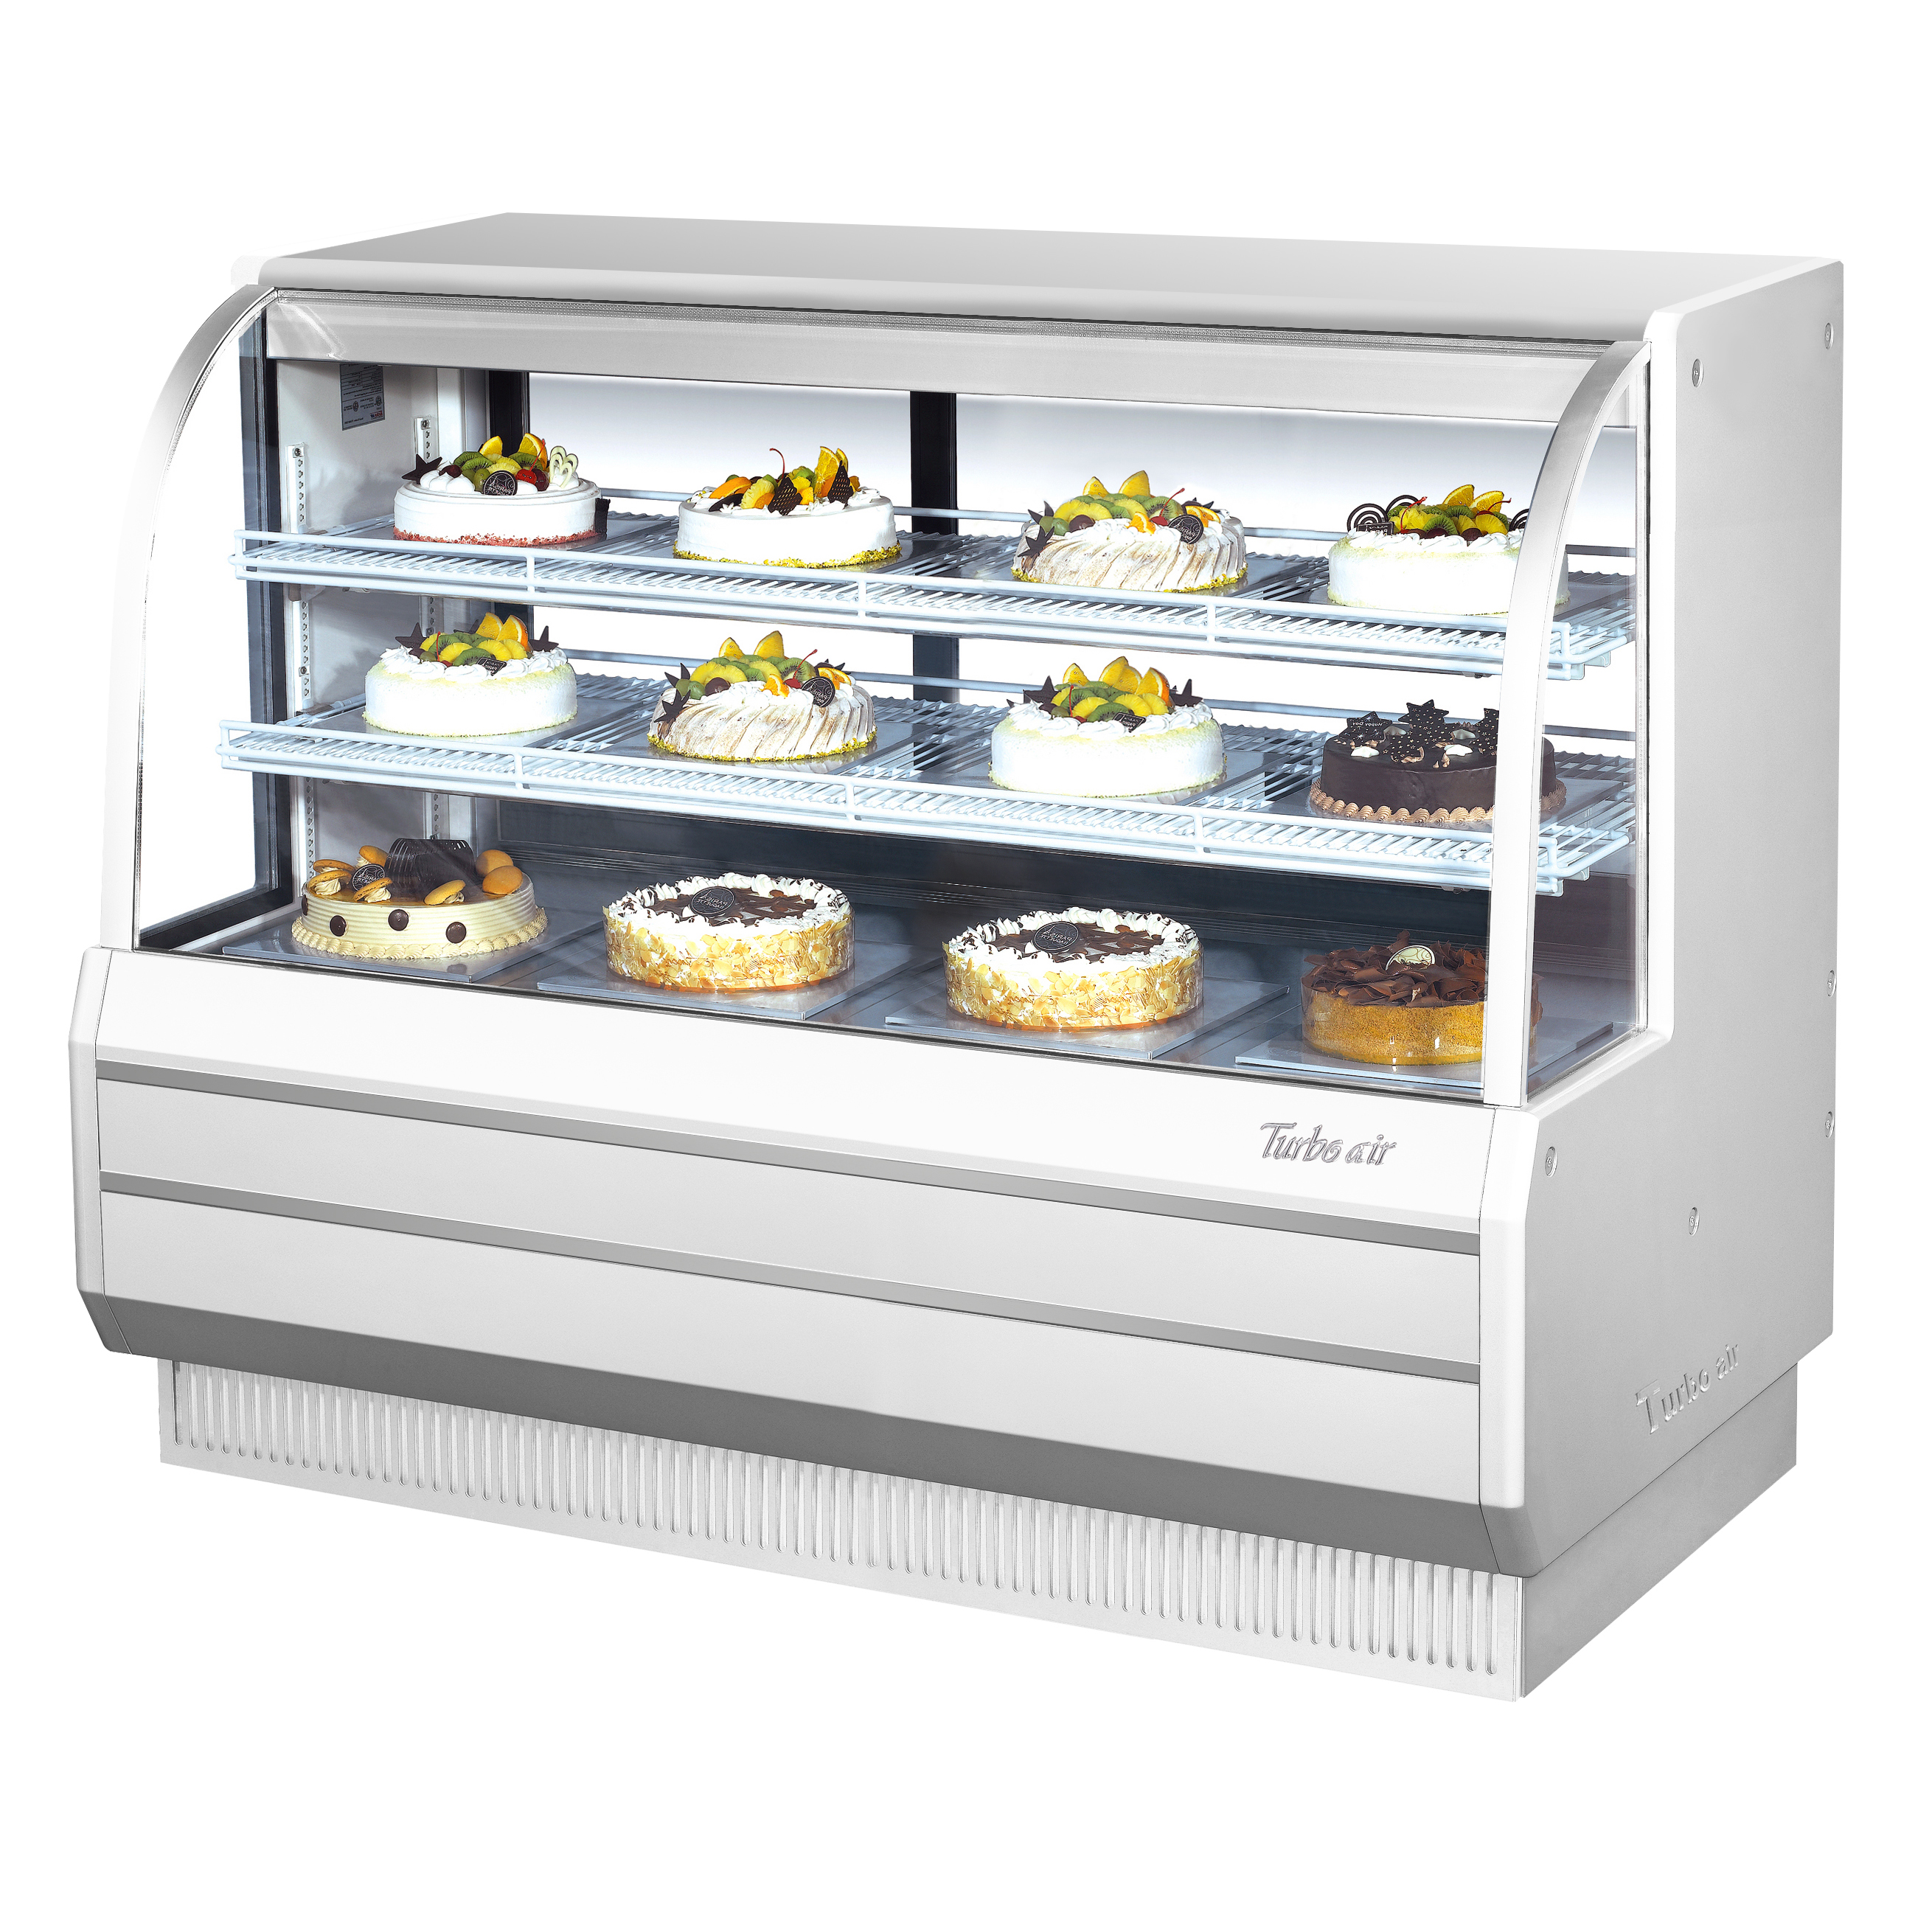 Turbo Air TCGB-60-W(B)-N display case, refrigerated bakery